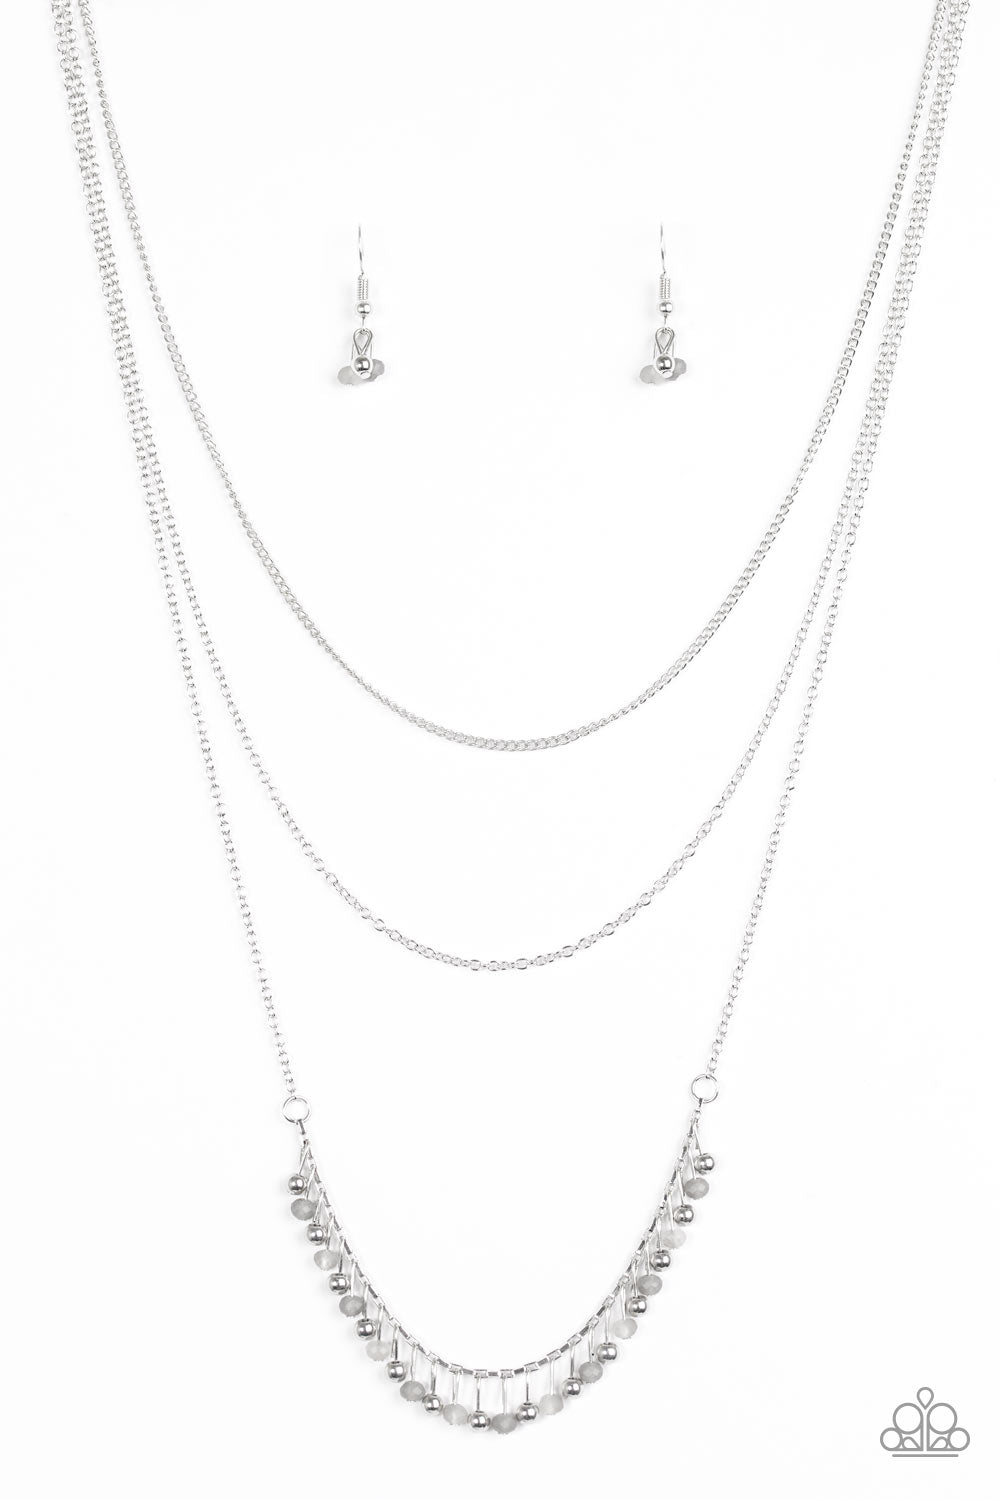 Twinkly Troves Silver Necklace